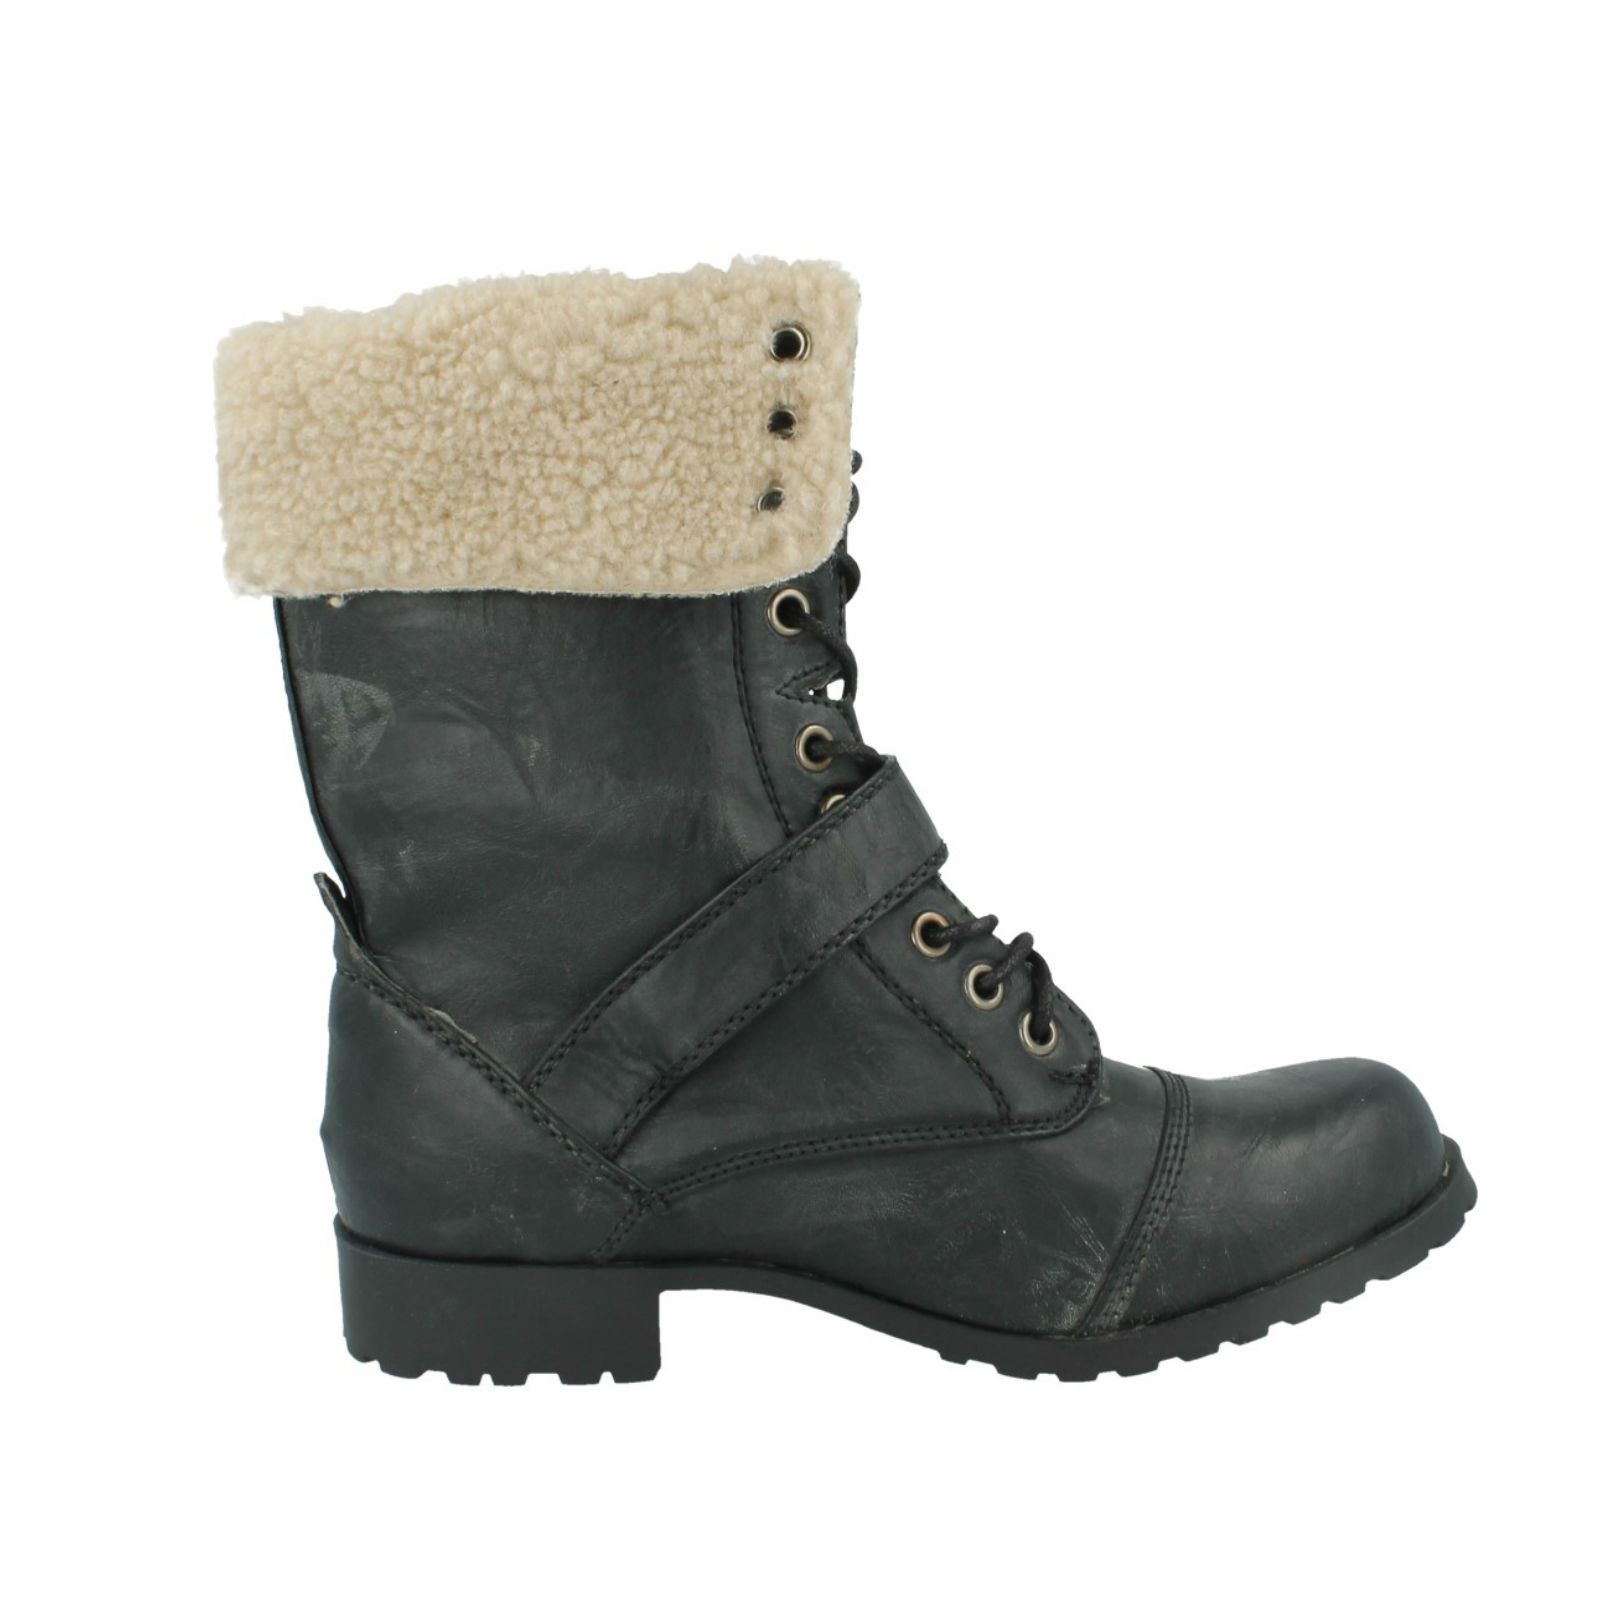 Girls Spot On Boots Style - H4064